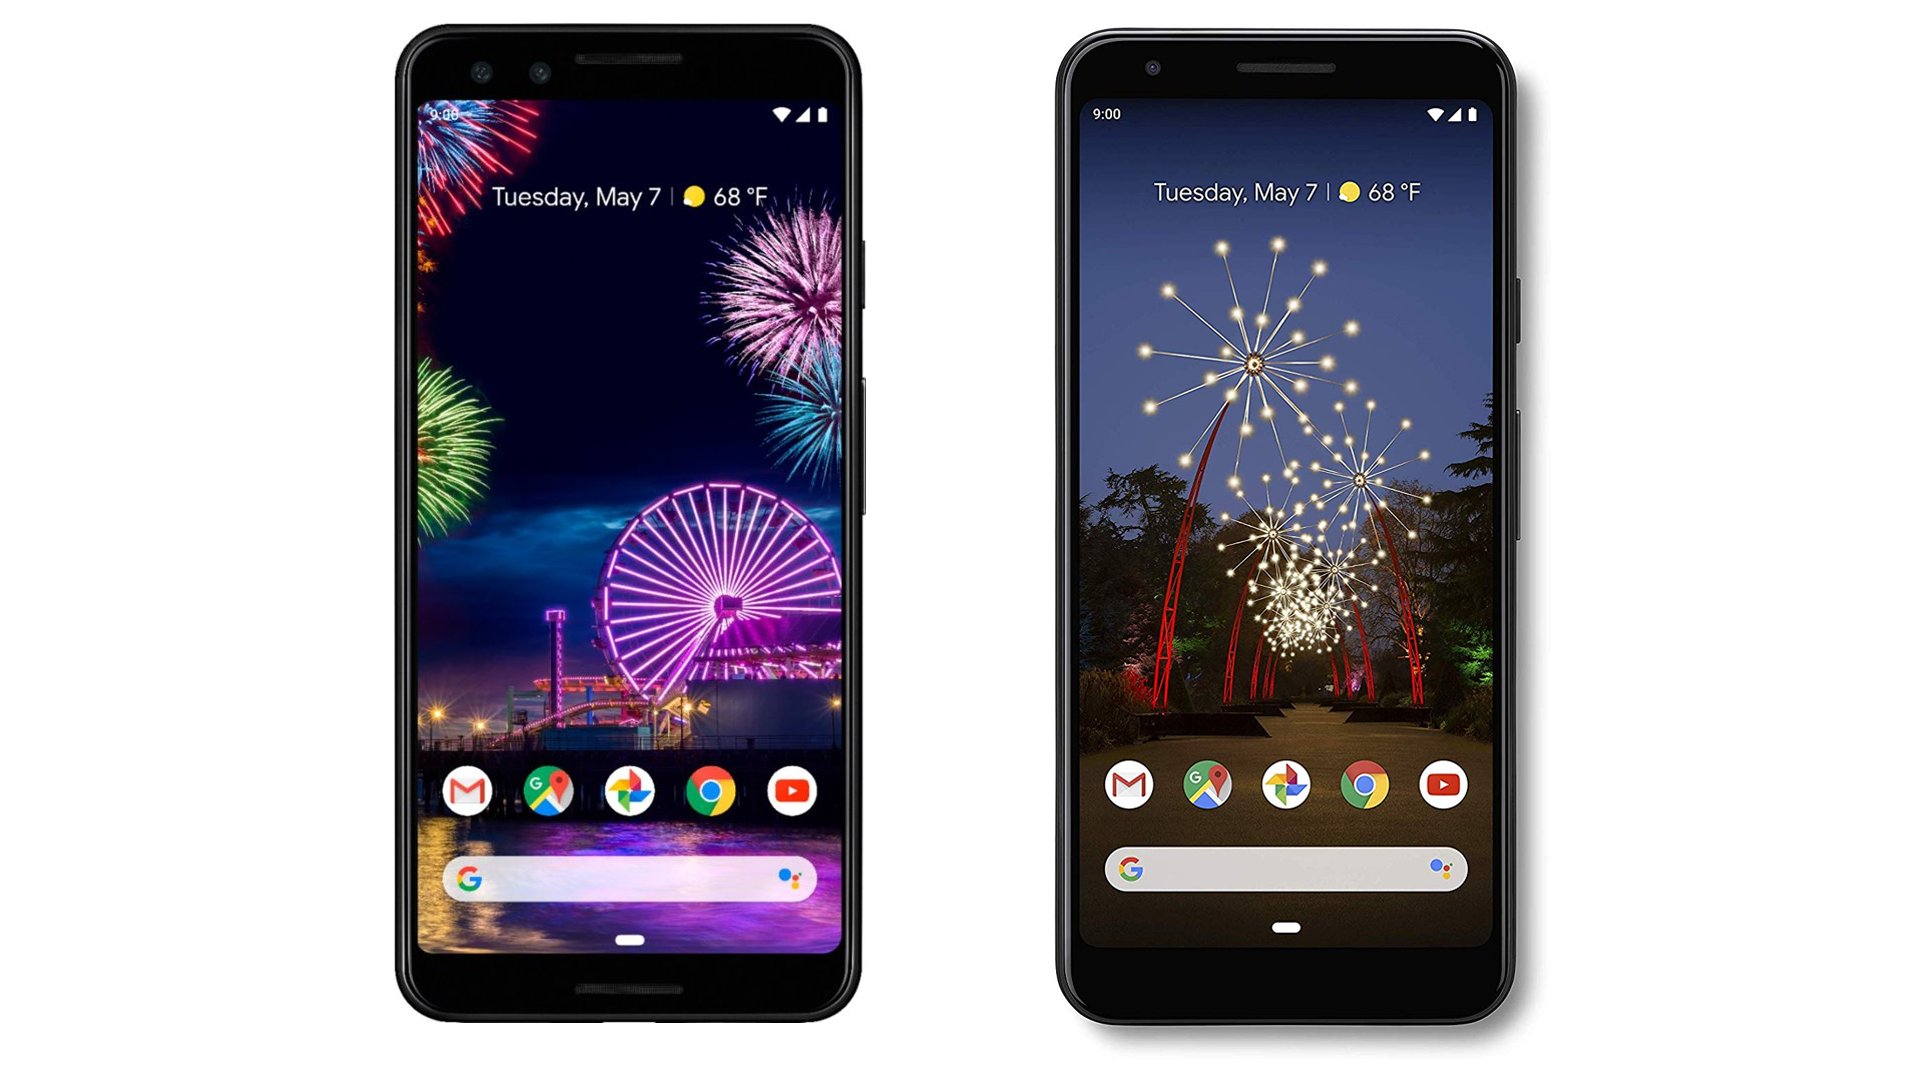 A photo of the Pixel 3 and Pixel 3a